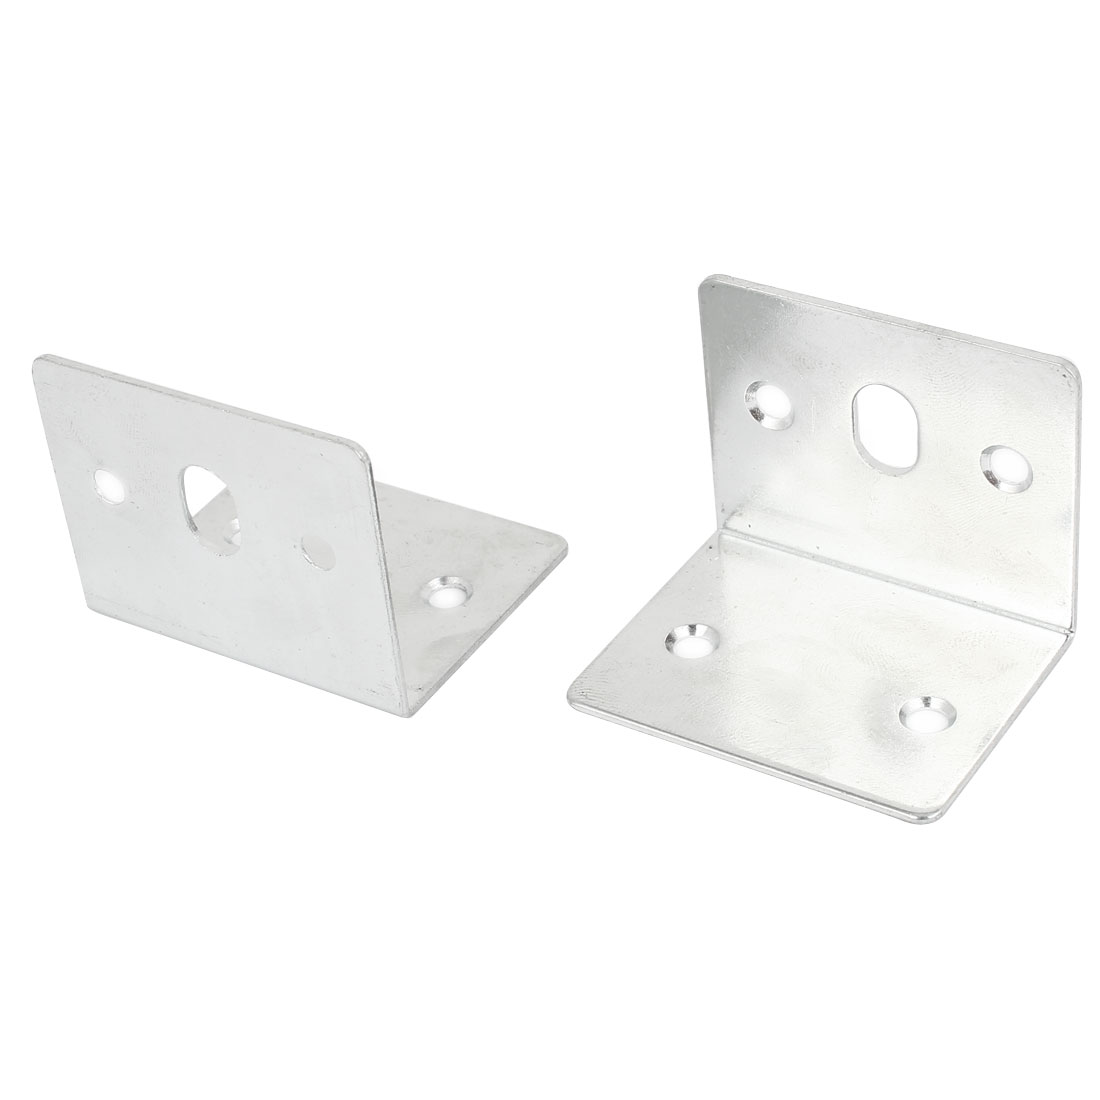 Shelf Door 40mm x 40mm 90 Degree Corner Angle Brackets Silver Tone 2 Pcs